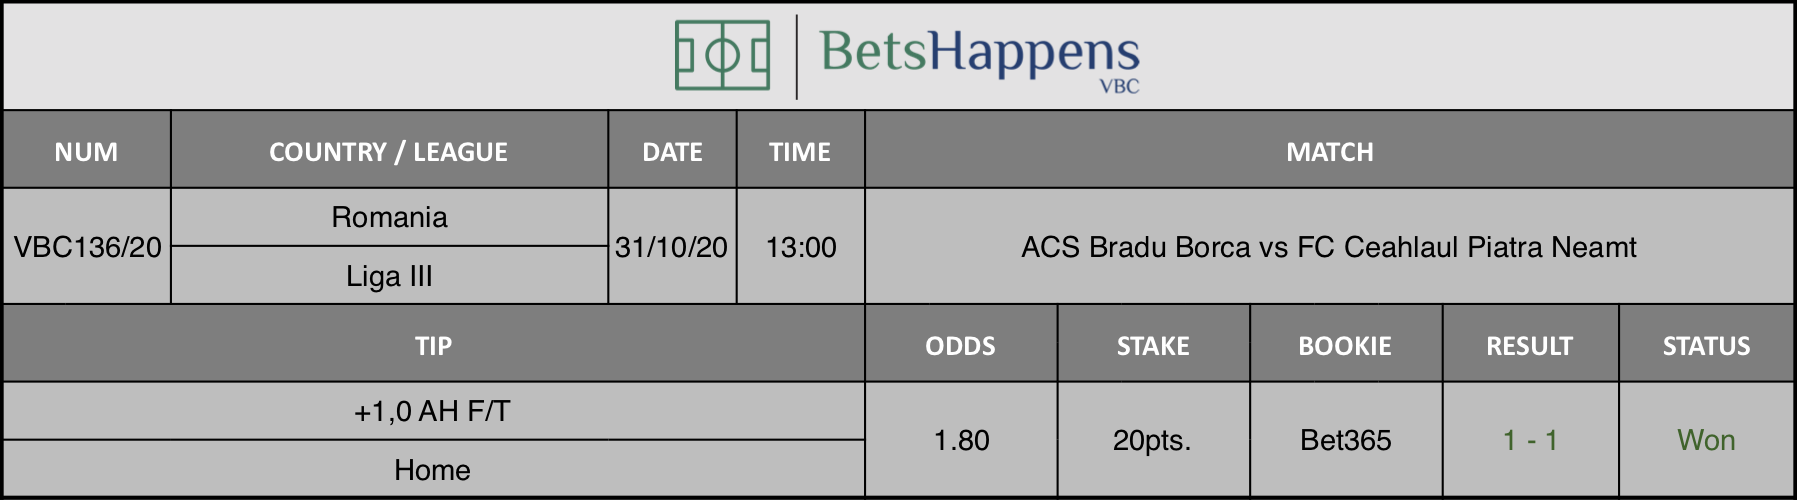 Results of our tip for the ACS Bradu Borca vs FC Ceahlaul Piatra Neamt  match where +1,0 AH F/T Home is recommended.